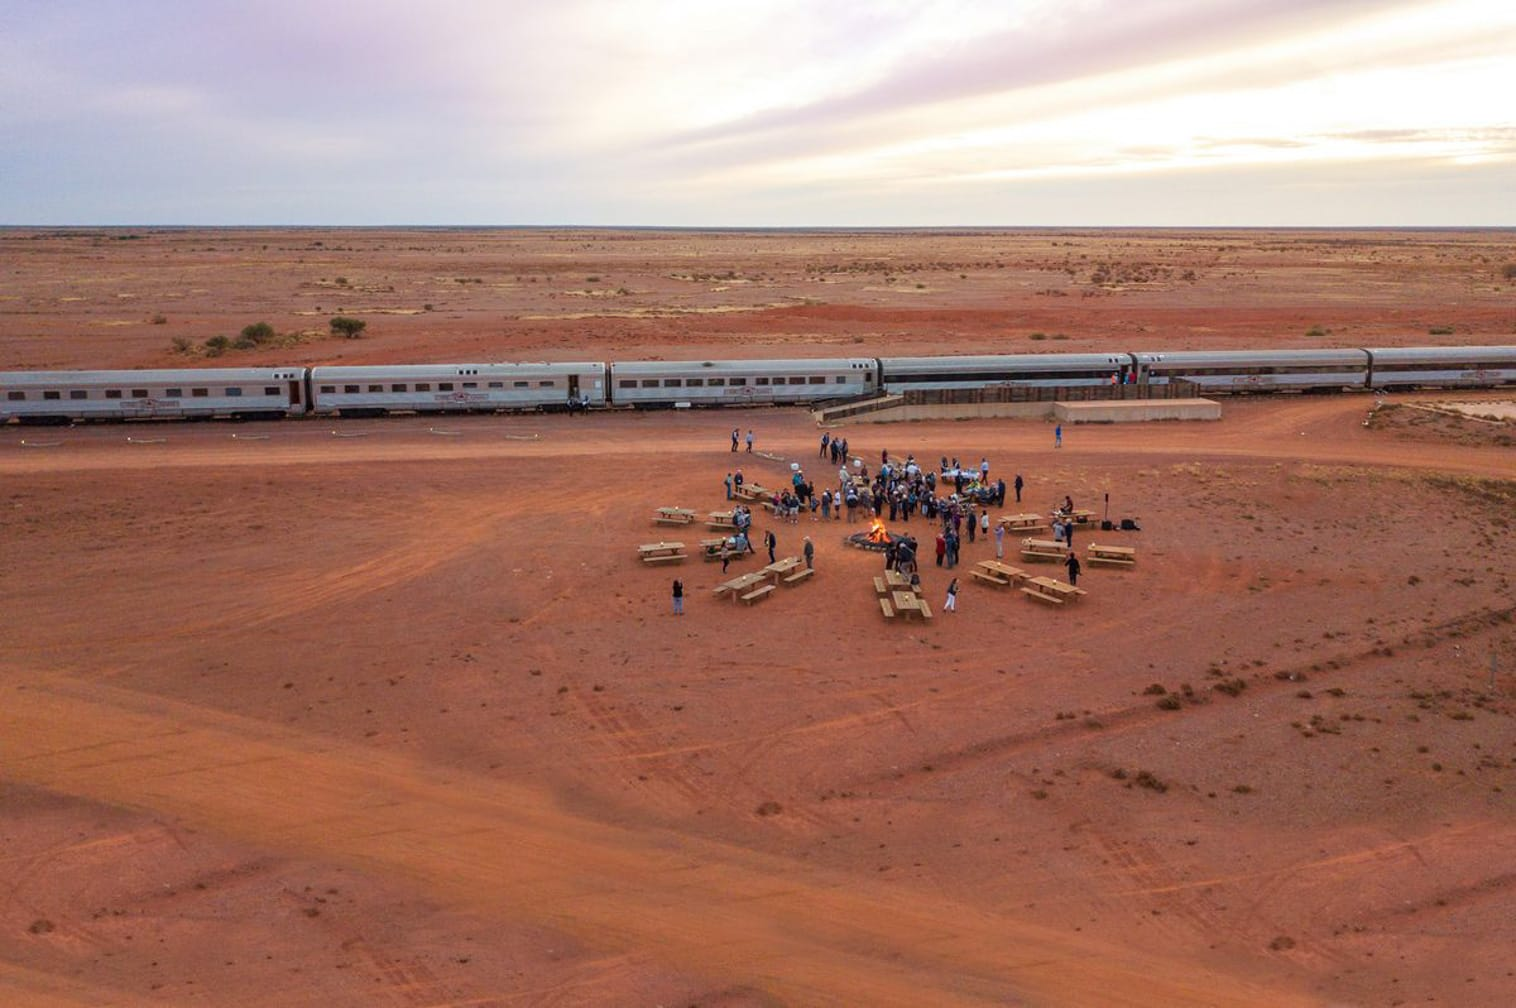 Bonfire in the outback on the Indian Pacific train